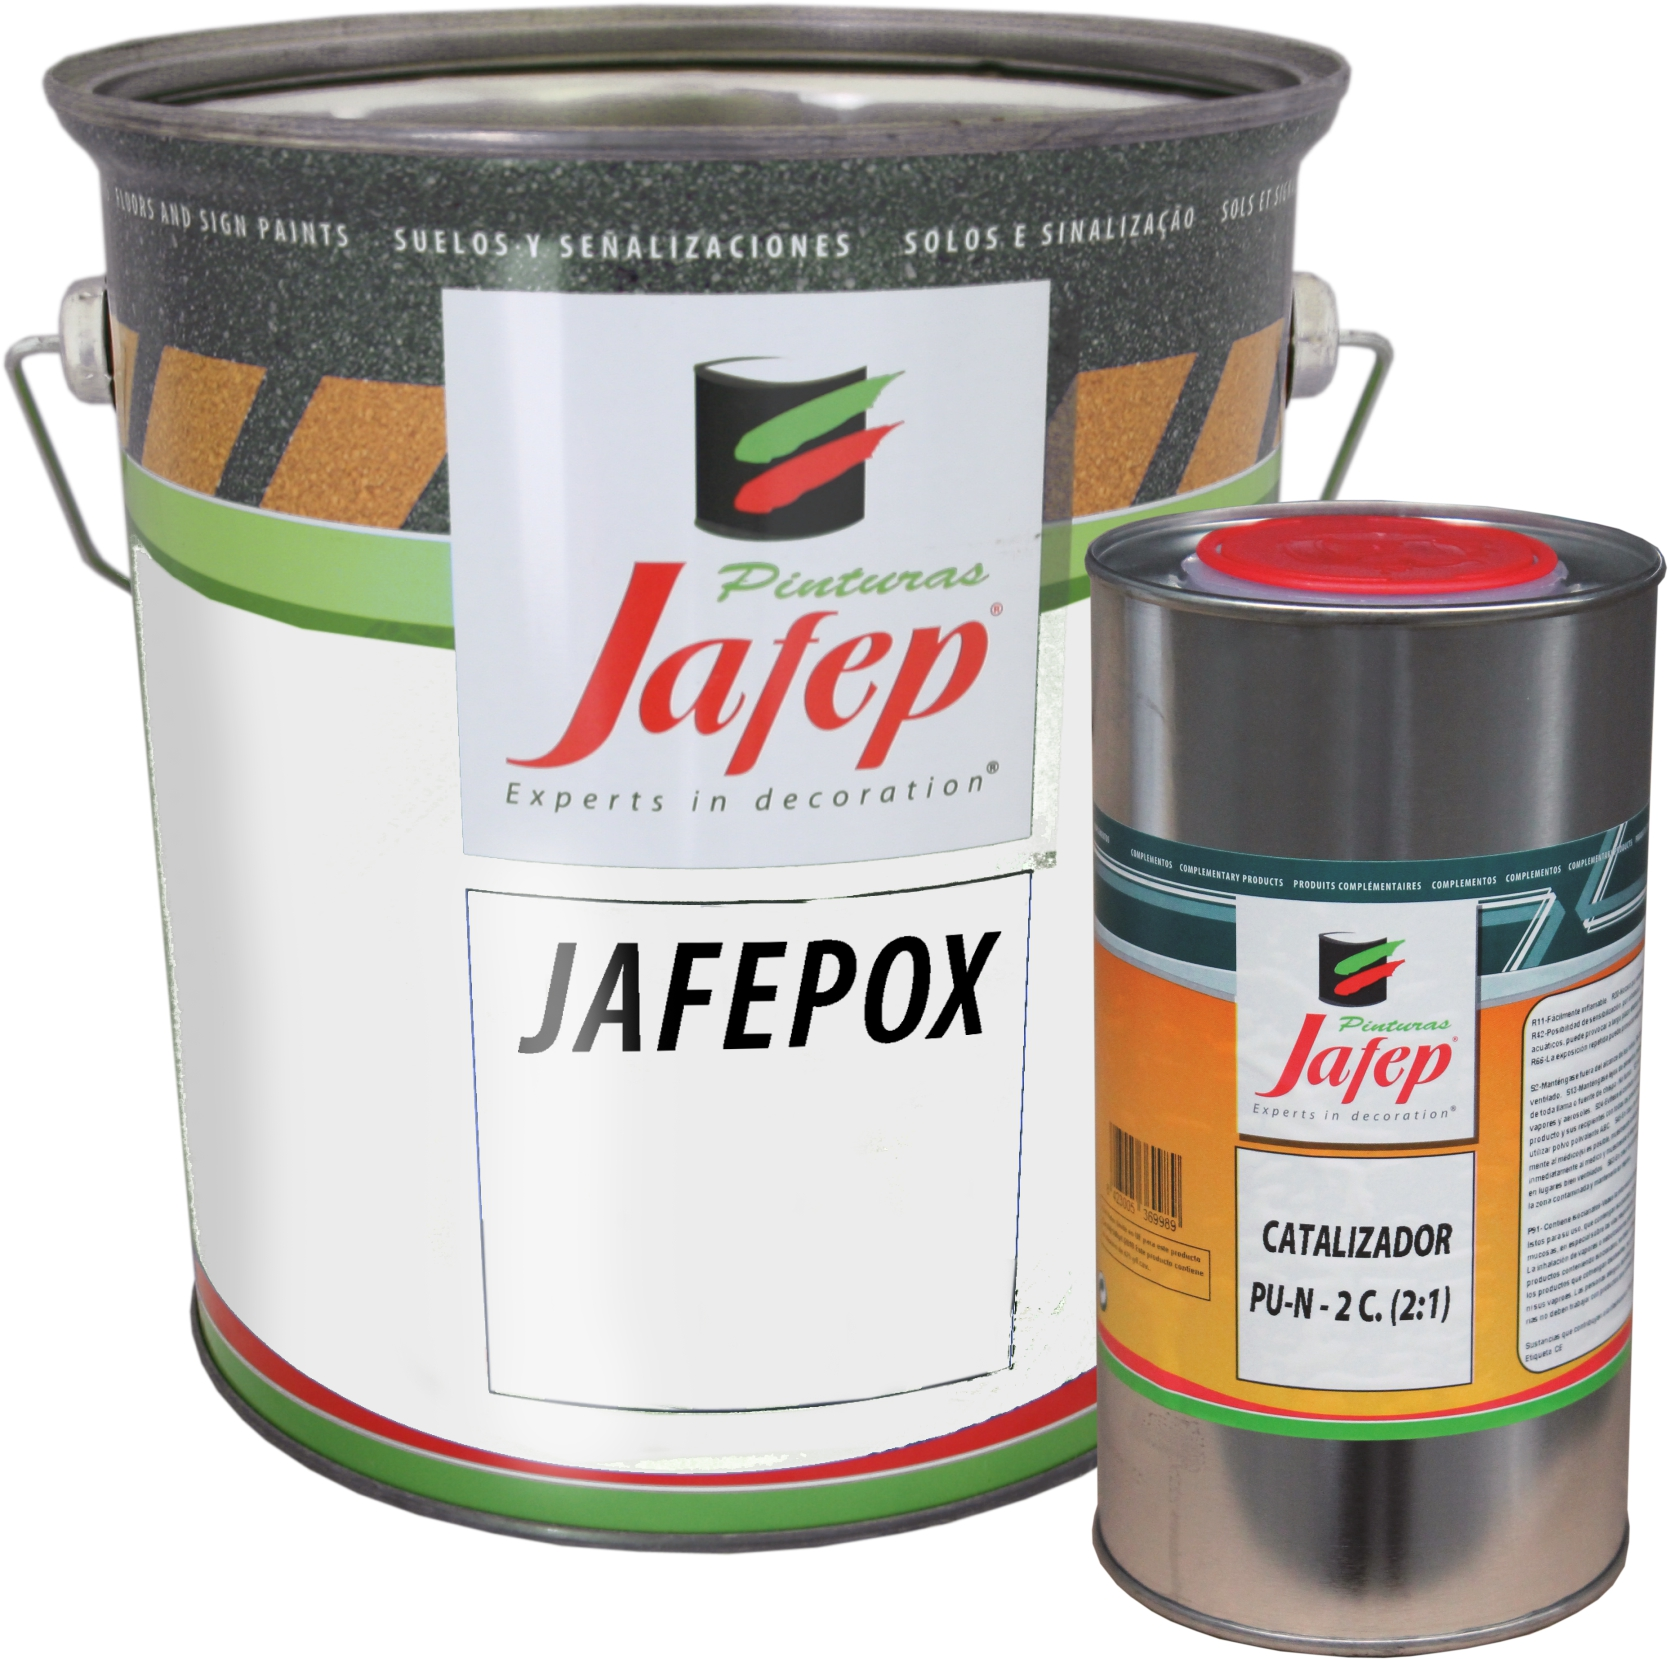 jafepox 54 r sine poxy catalyseur peintures jafep. Black Bedroom Furniture Sets. Home Design Ideas